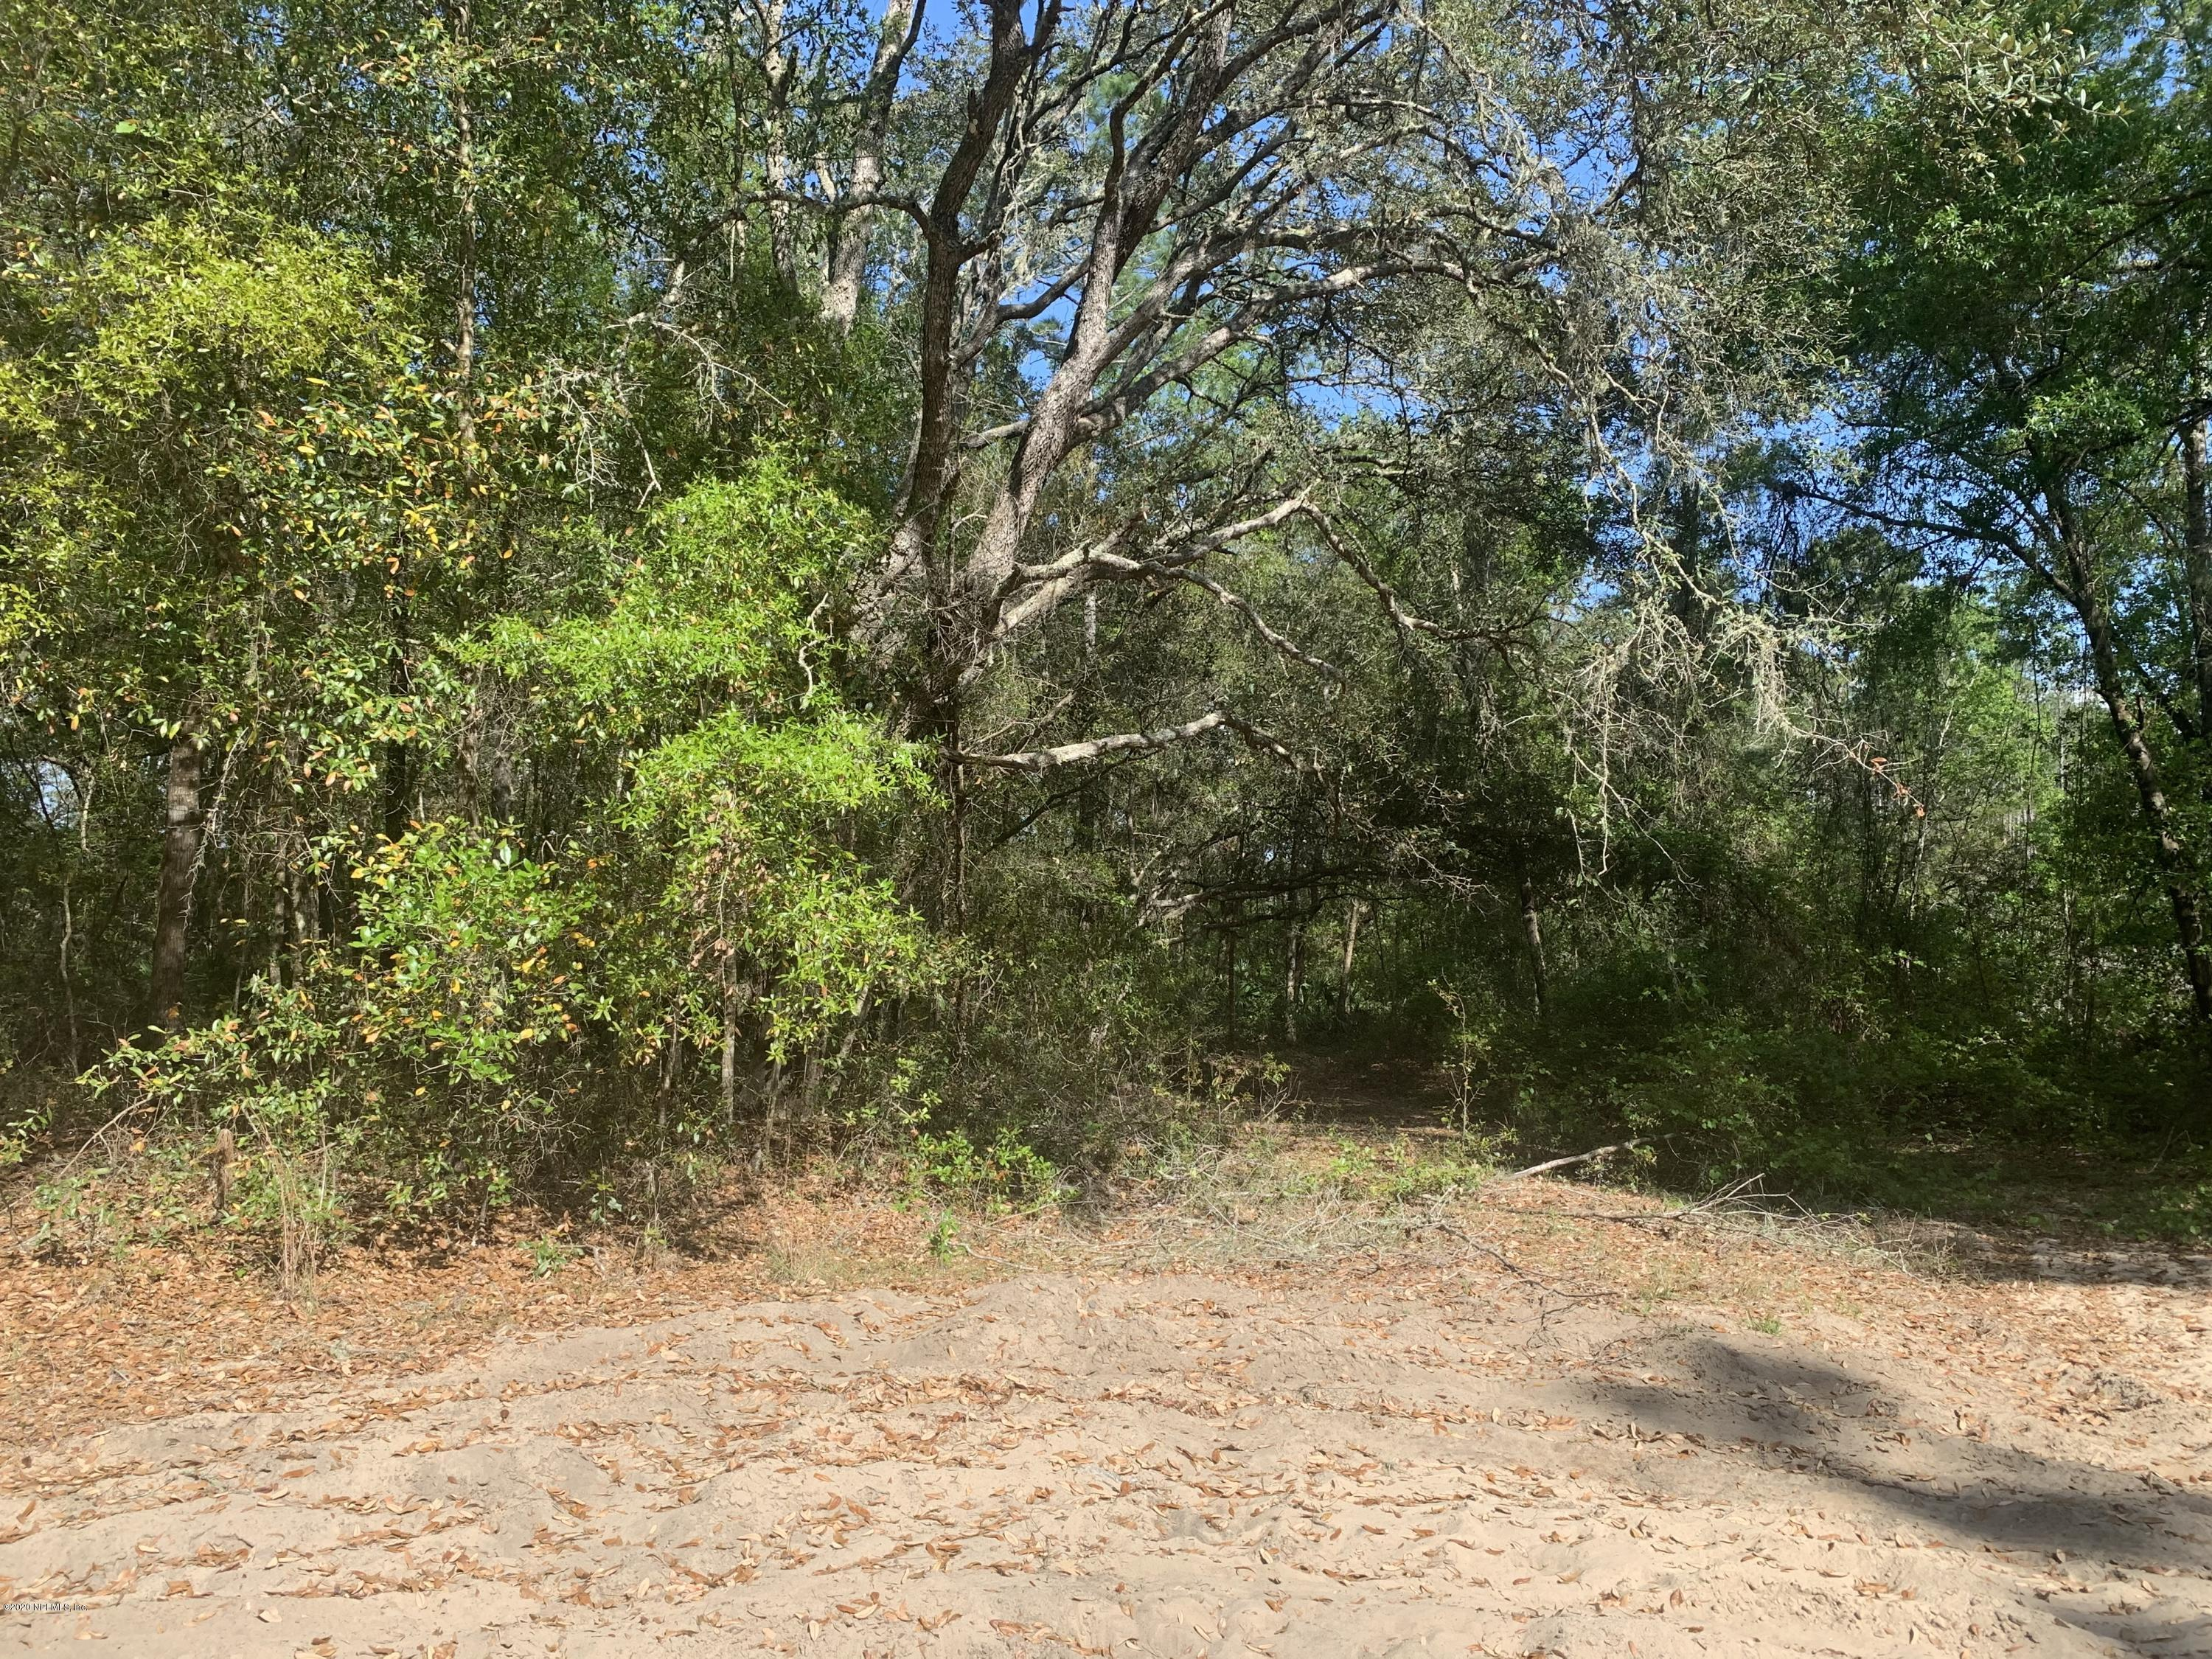 151 QUAIL, INTERLACHEN, FLORIDA 32148, ,Vacant land,For sale,QUAIL,981481